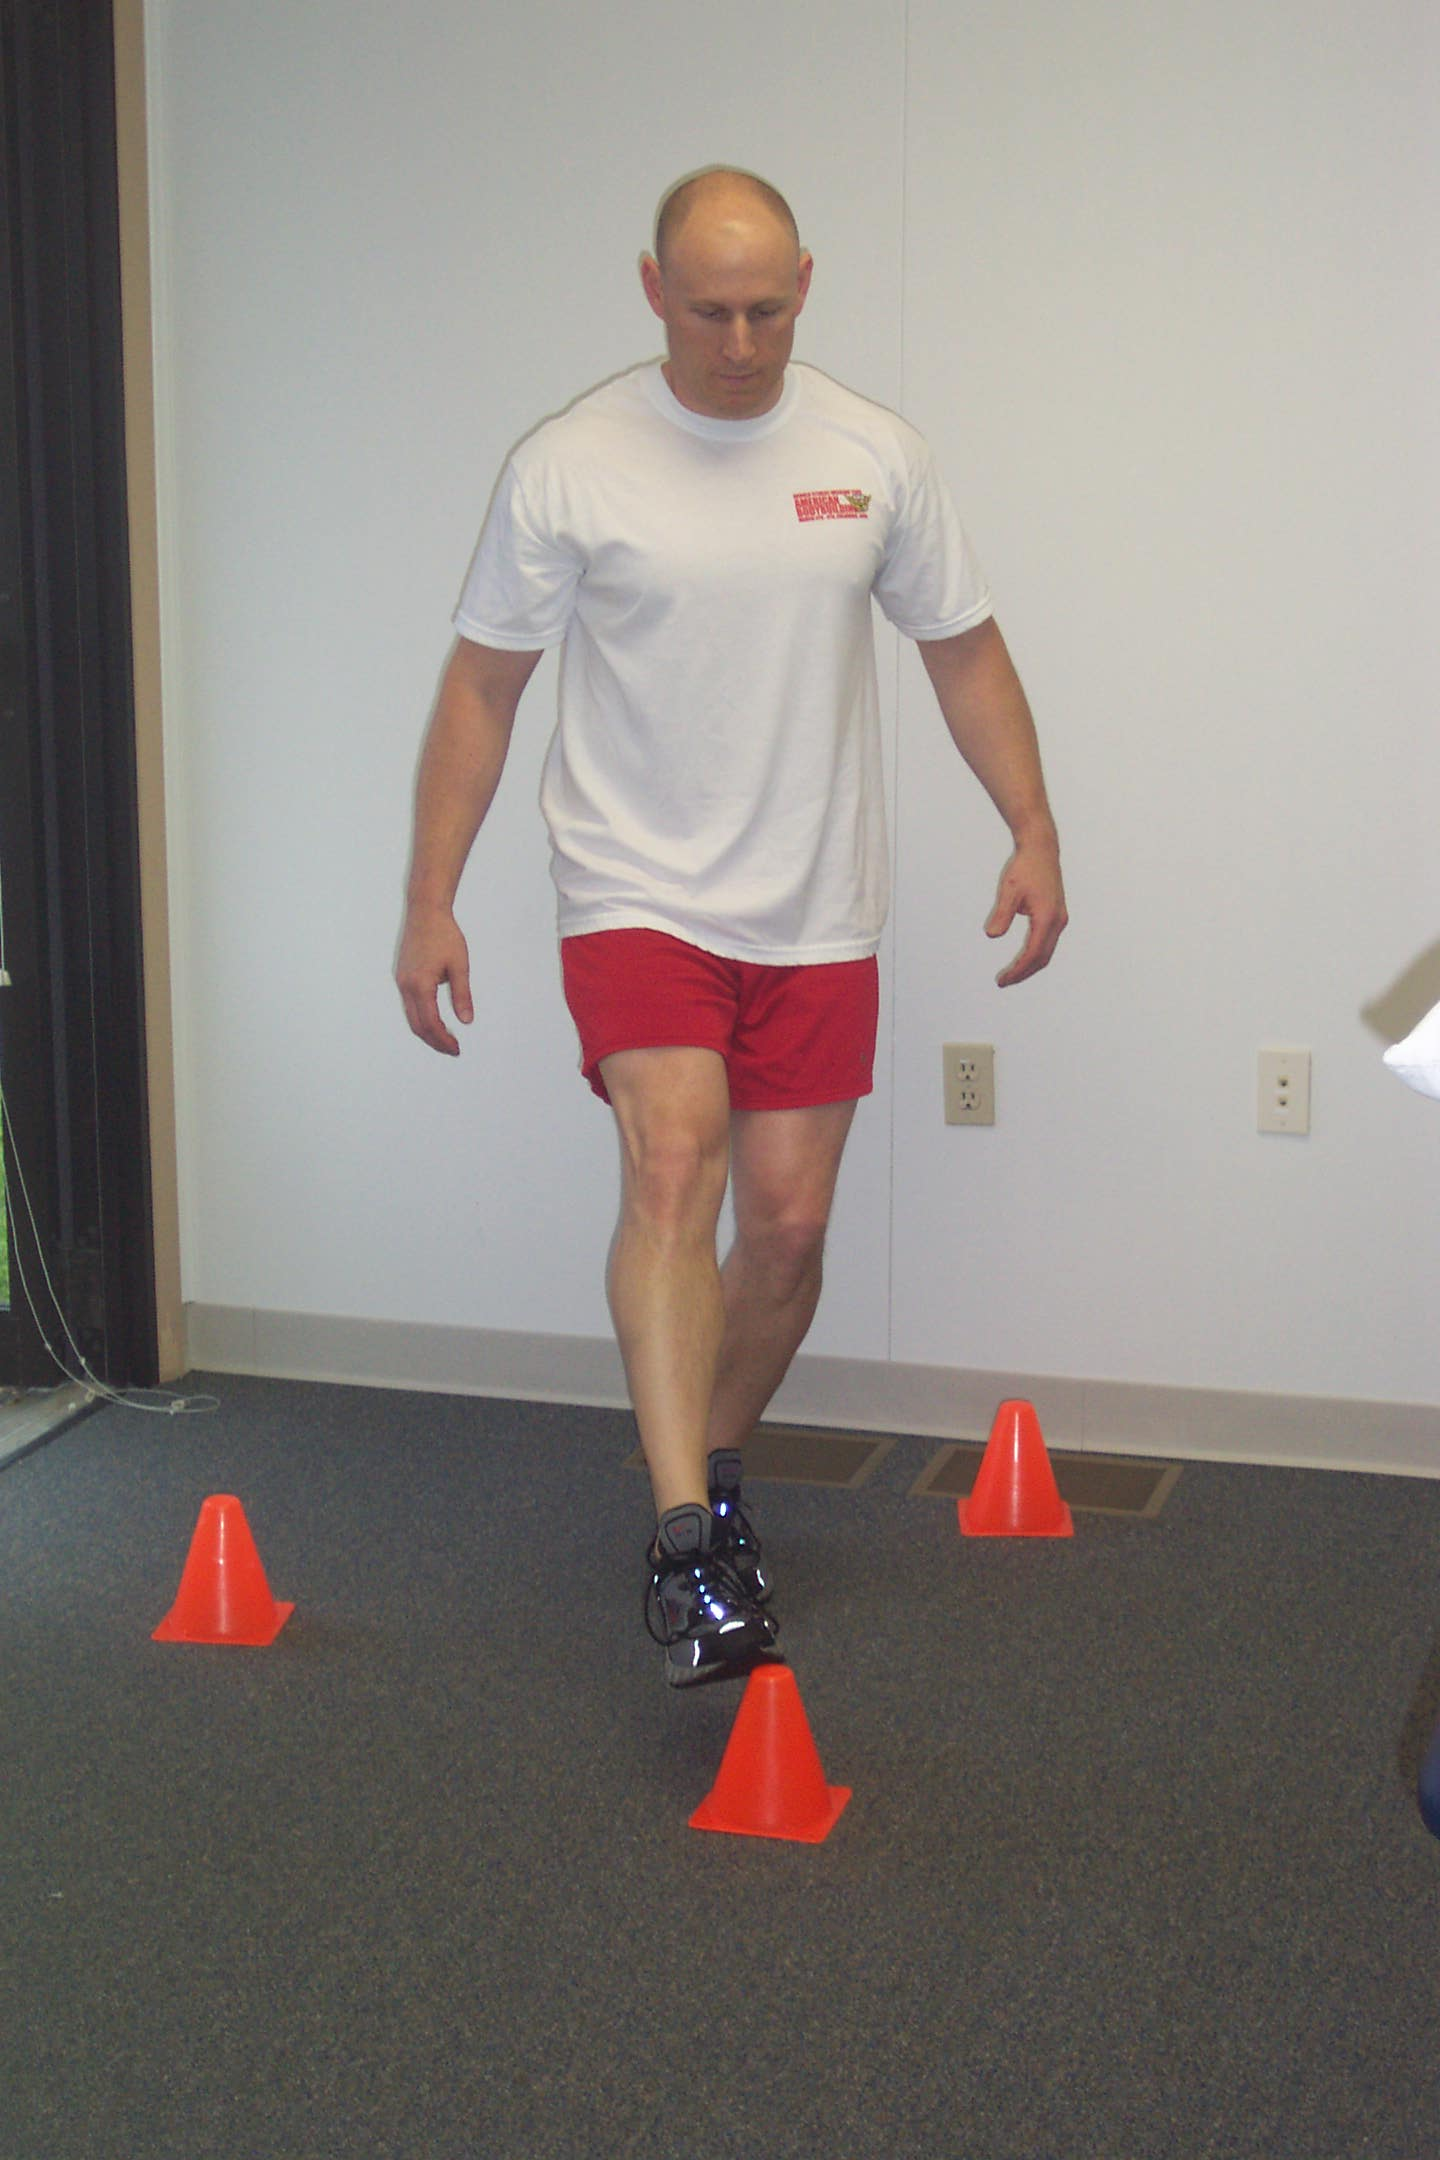 Balance exercise physical therapy - Le Balance And Reach Exercise